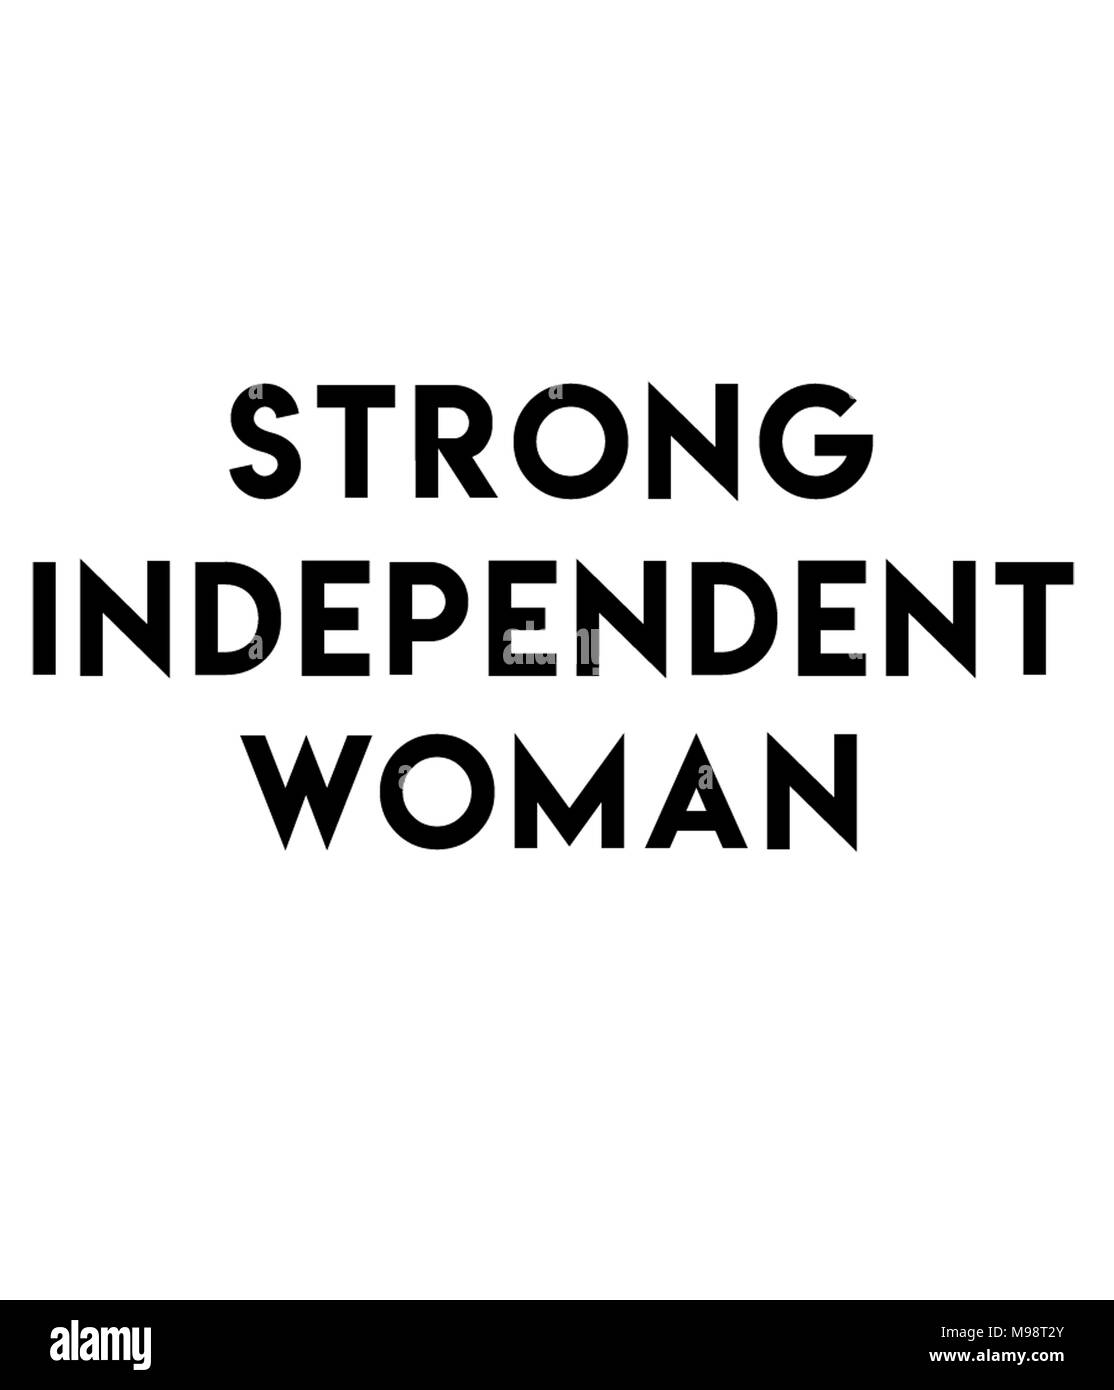 Strong Independent Woman quotes, inspirational - Stock Image